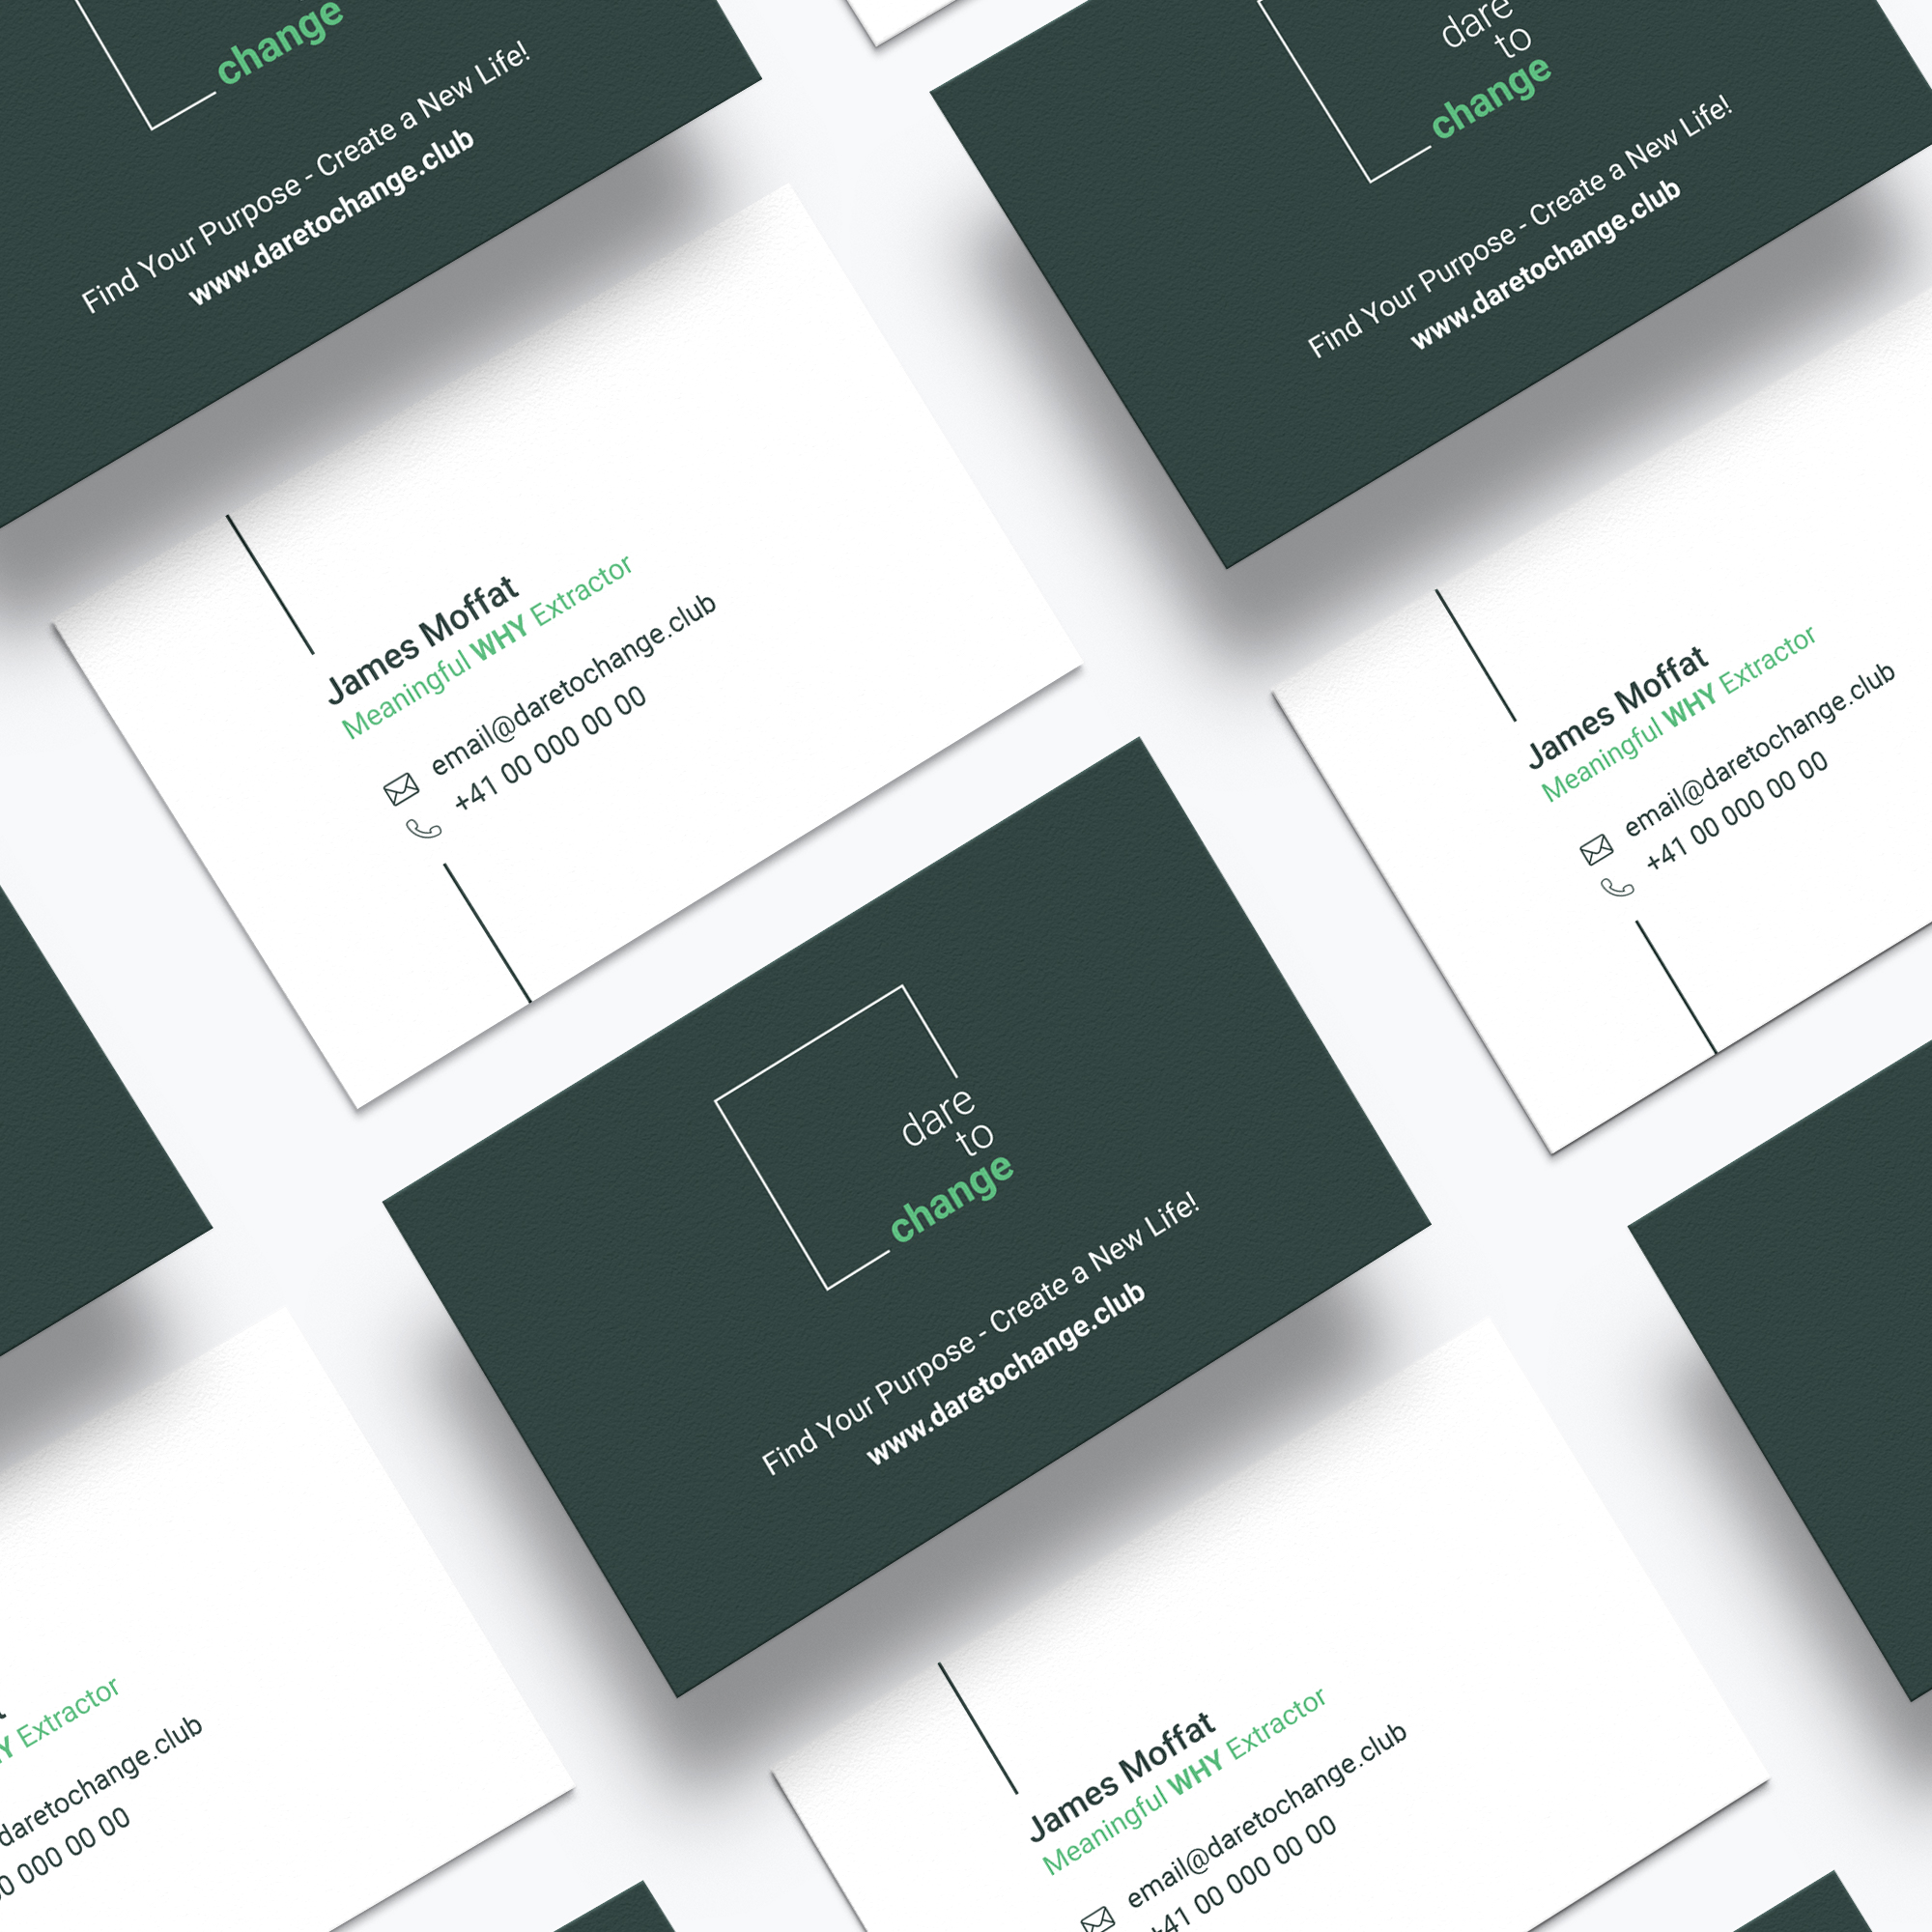 Dare to Change's business card design, both sides